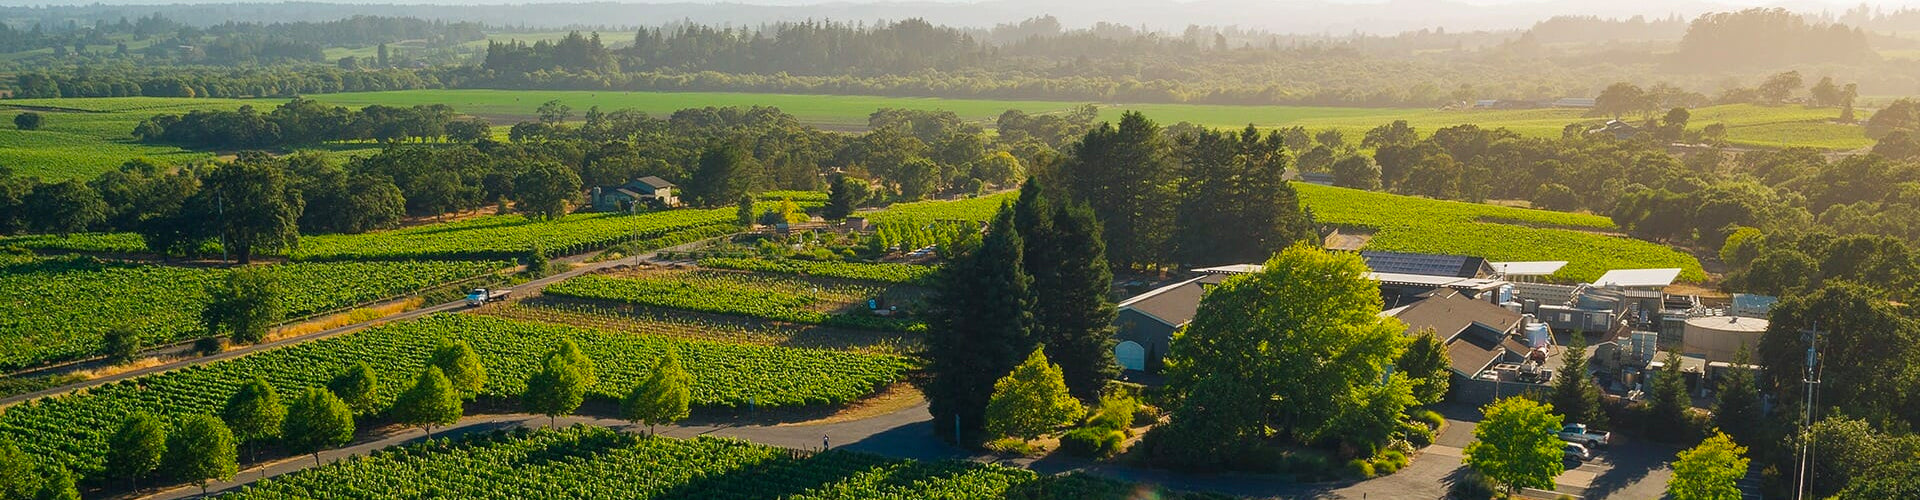 Arial shot of De Loach Winery & Vineyards in Sonoma County